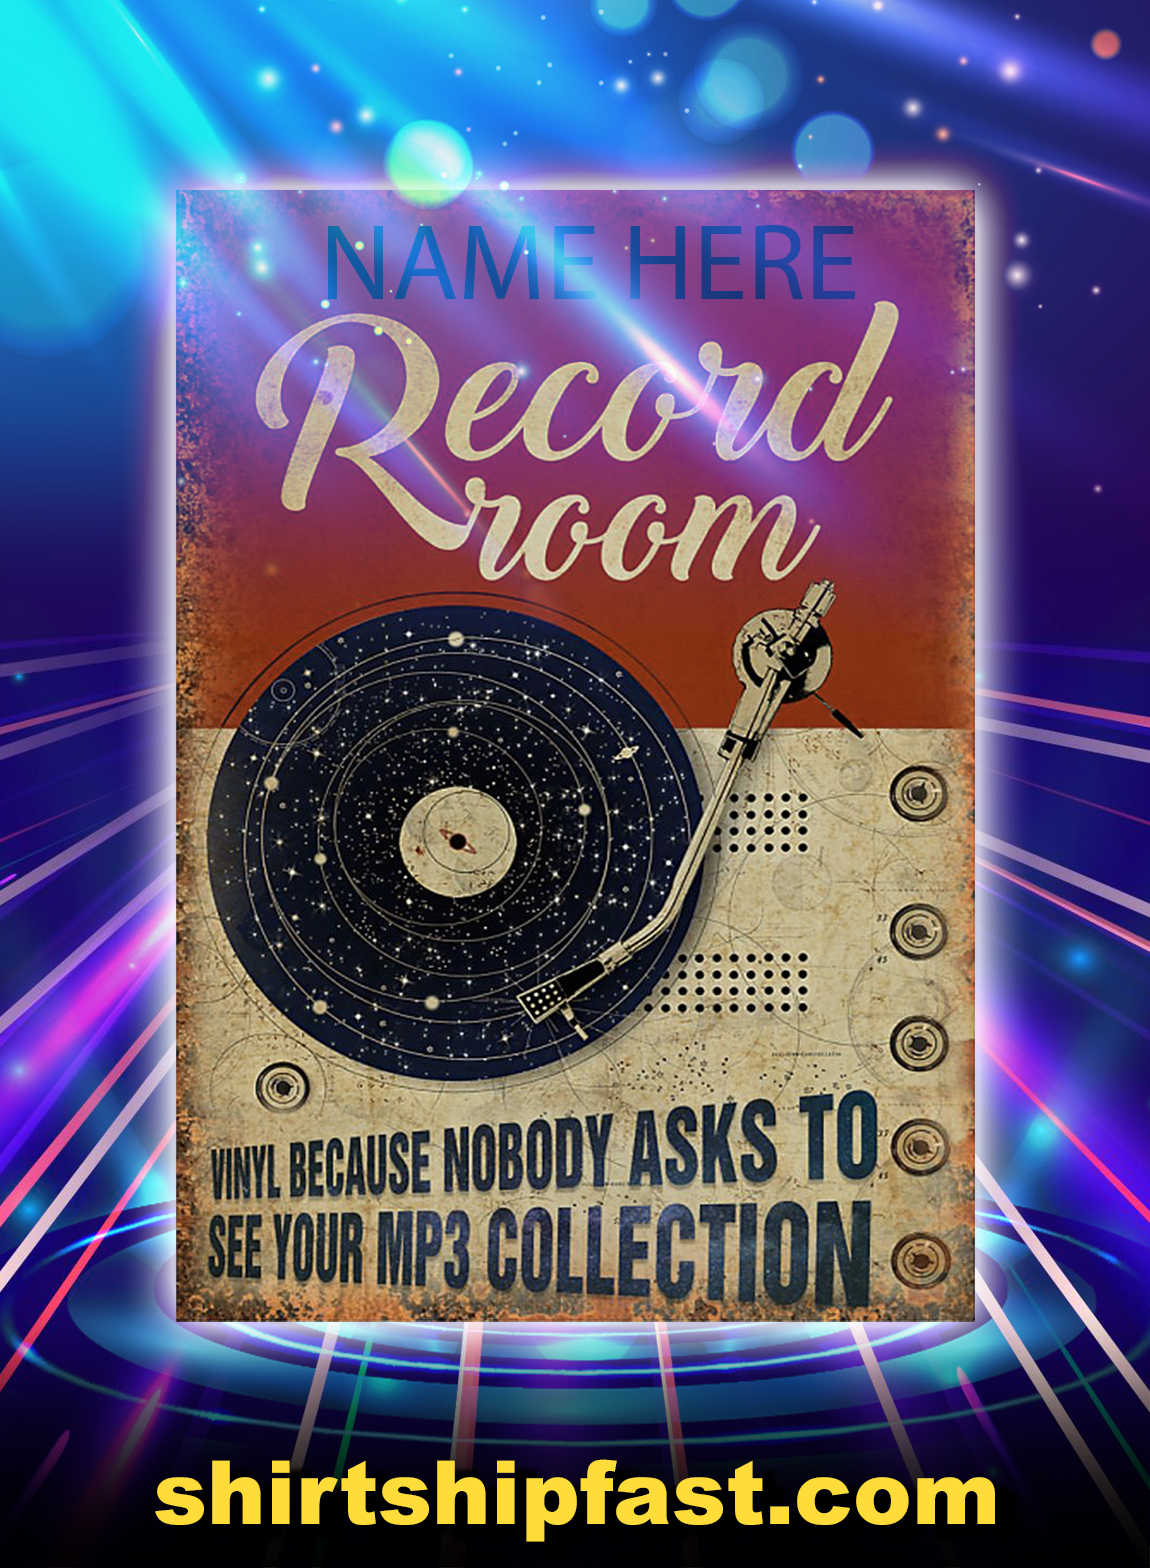 Custom name Record room vinyl because nobody asks to see your mp3 collection poster - A3